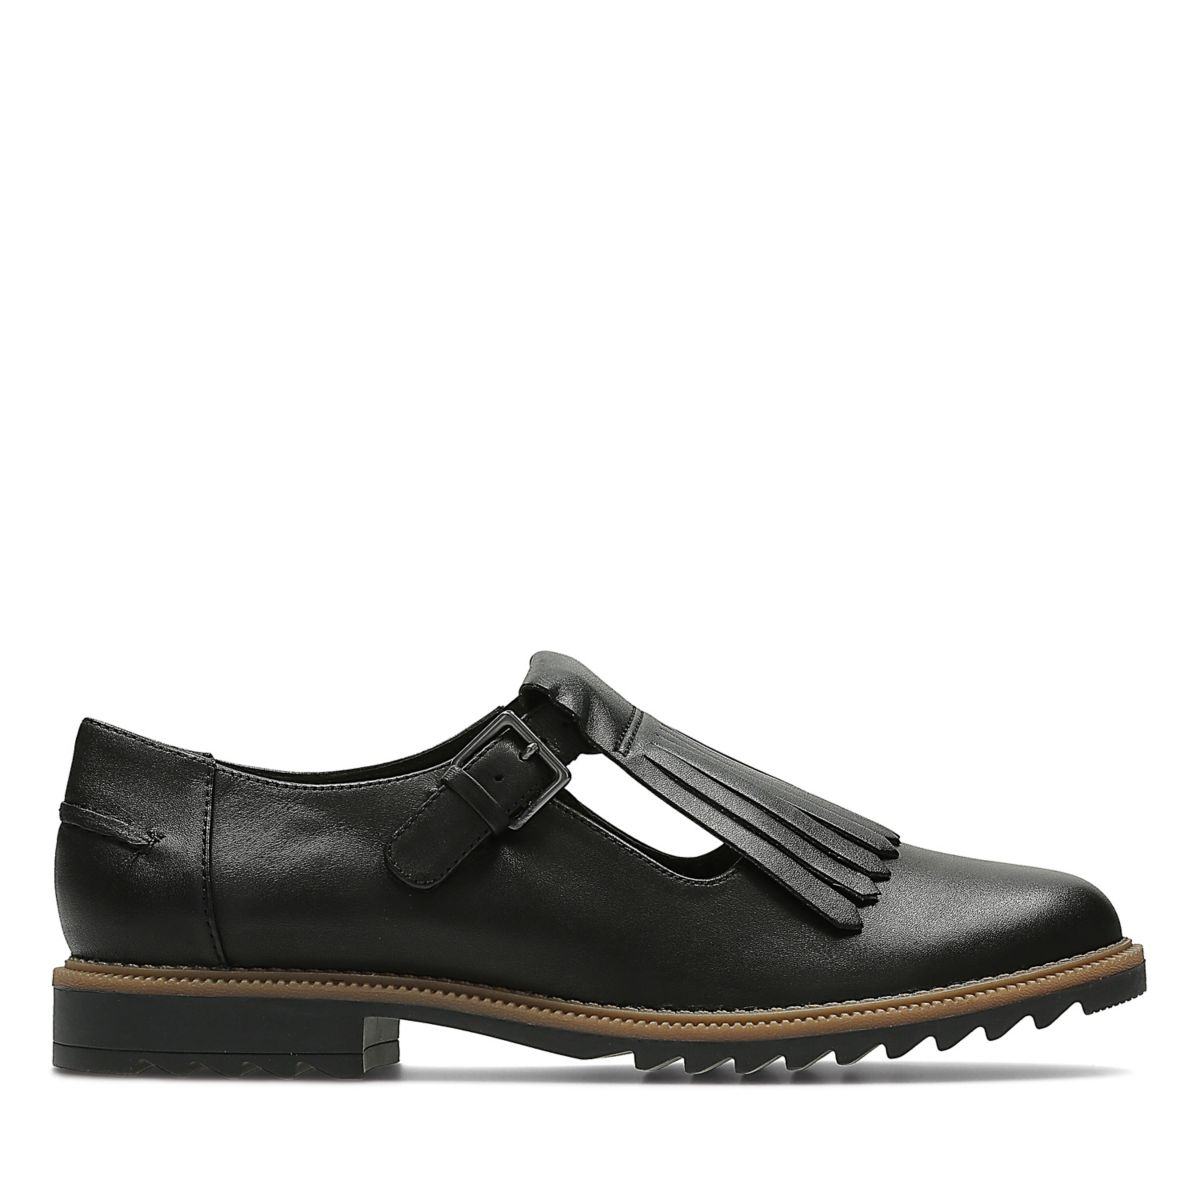 Womens Black Shoes Black Shoes For College And Work Clarks